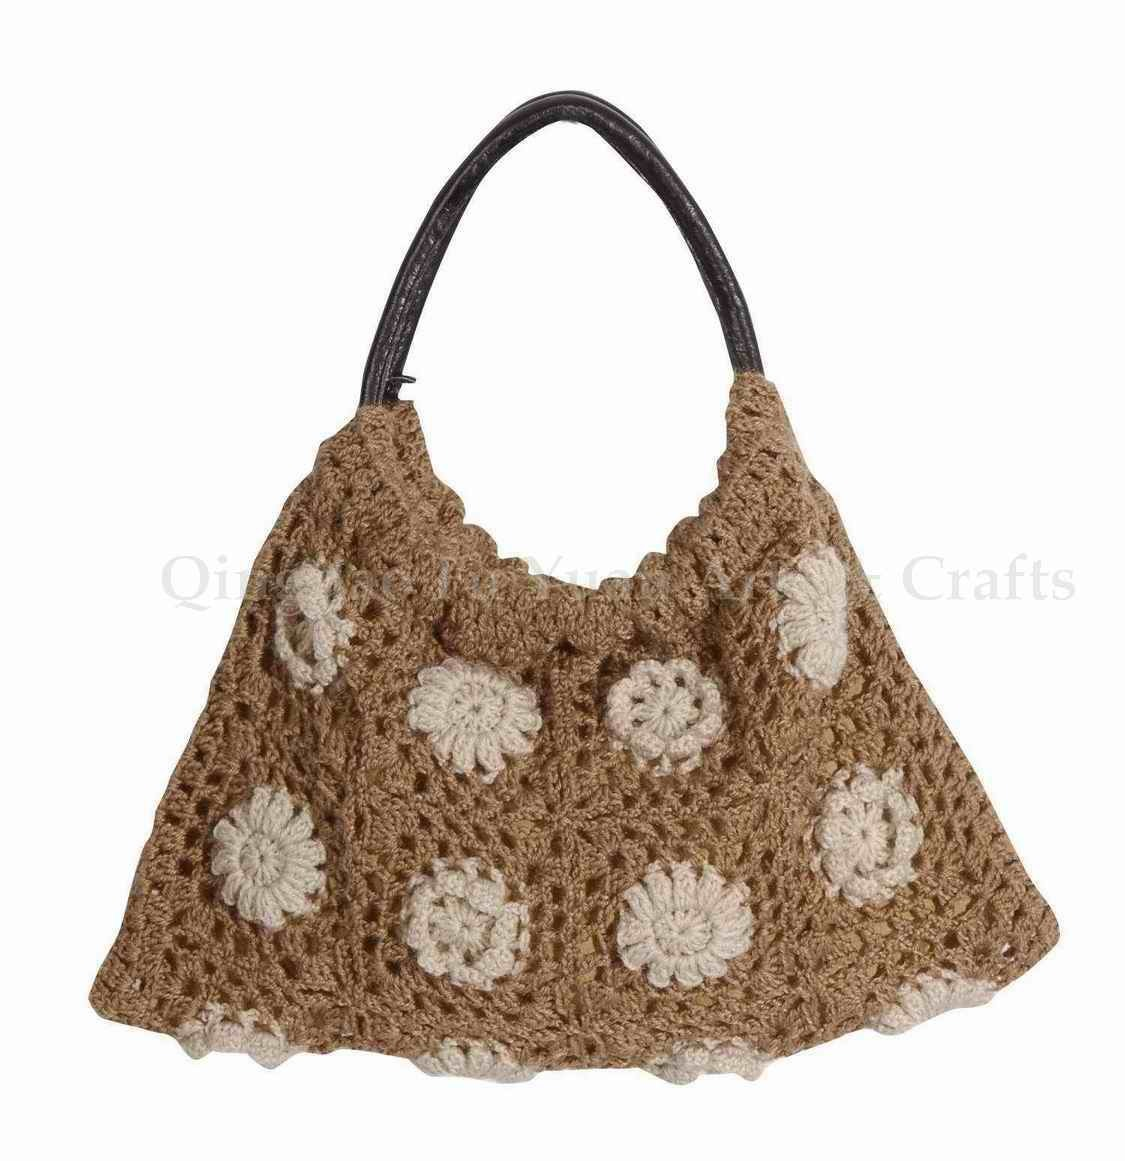 Crocheted Handbag : Crochet A Bag